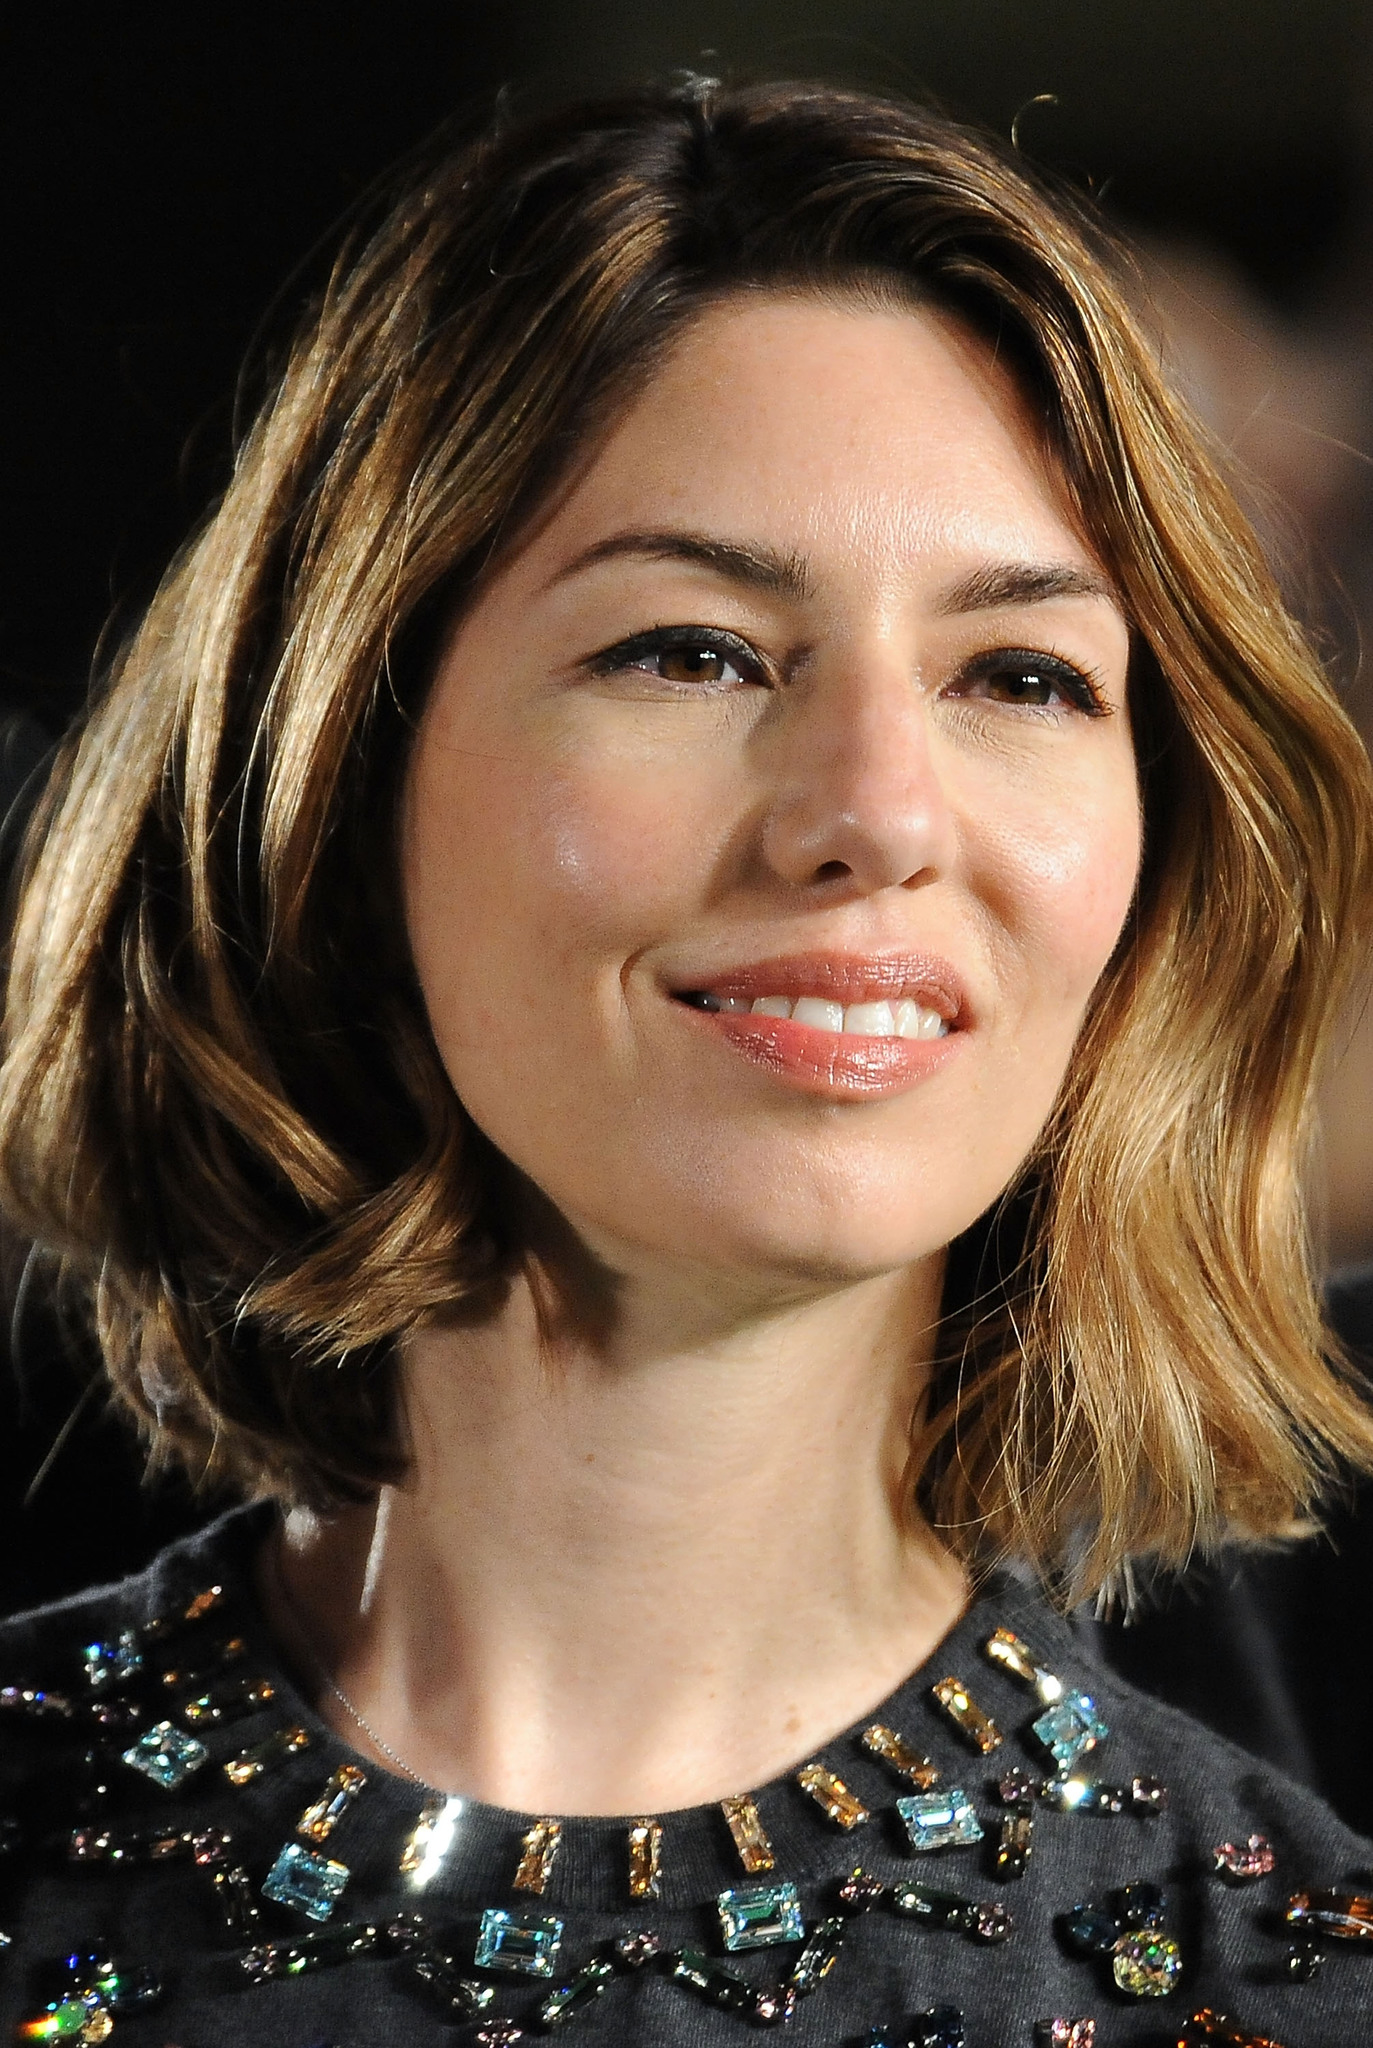 Fotos Sofia Coppola nude (54 photo), Sexy, Cleavage, Selfie, braless 2018